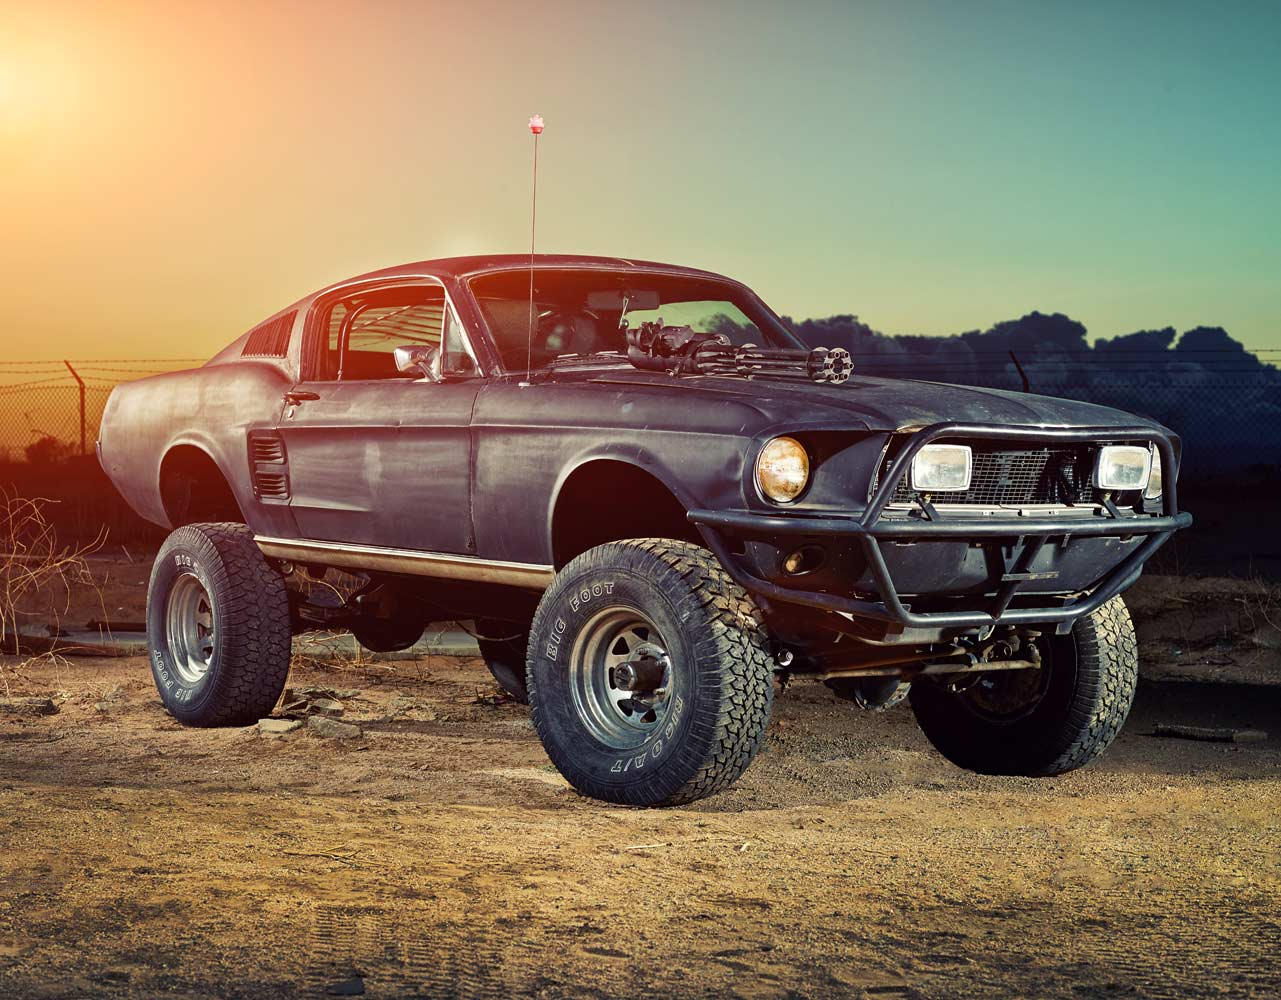 1967 Ford Mustang Fastback for the Apocalypse